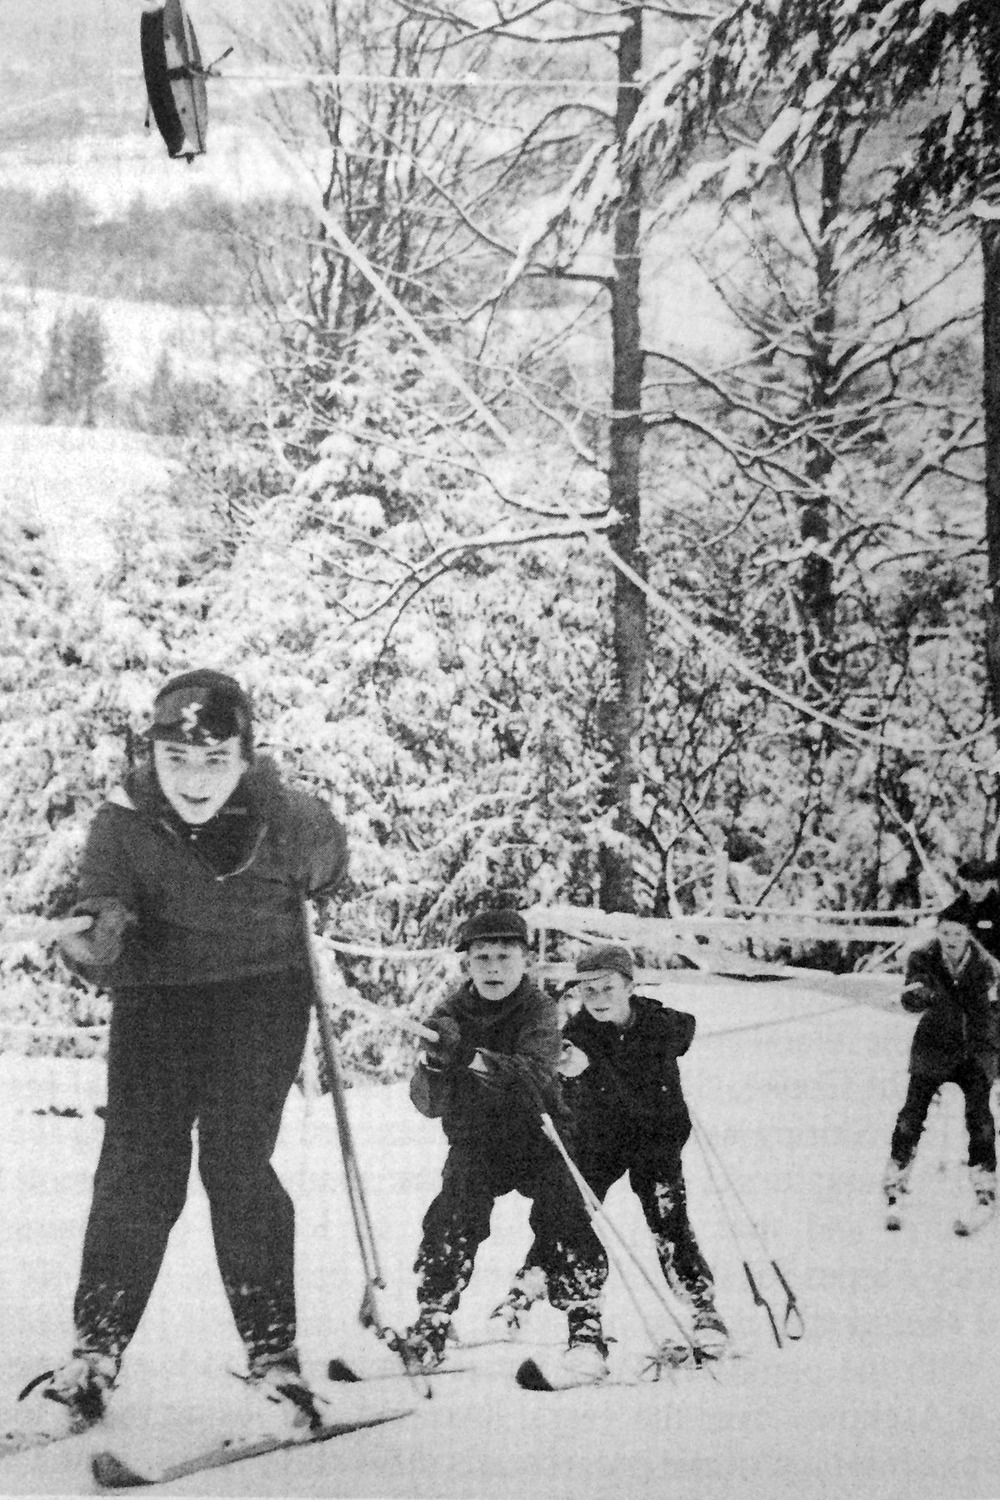 Riding the rope tow in 1956